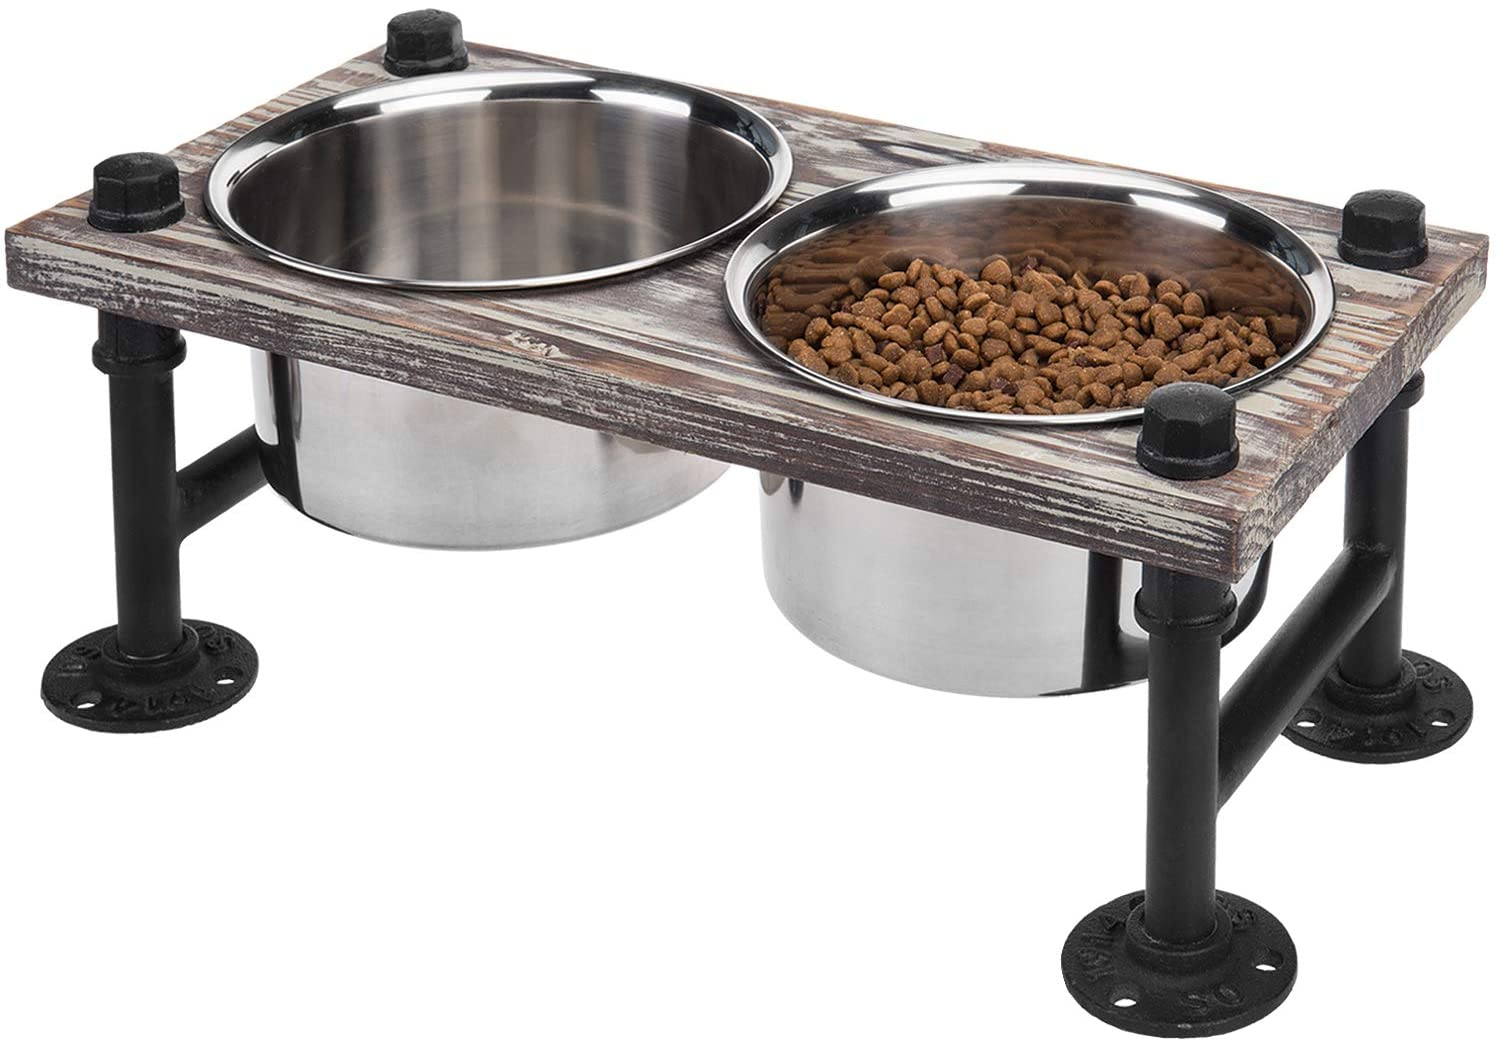 MyGift Torched Wood & Industrial Metal Elevated Double Pet Feeder Stand with 2 Stainless Steel Bowls